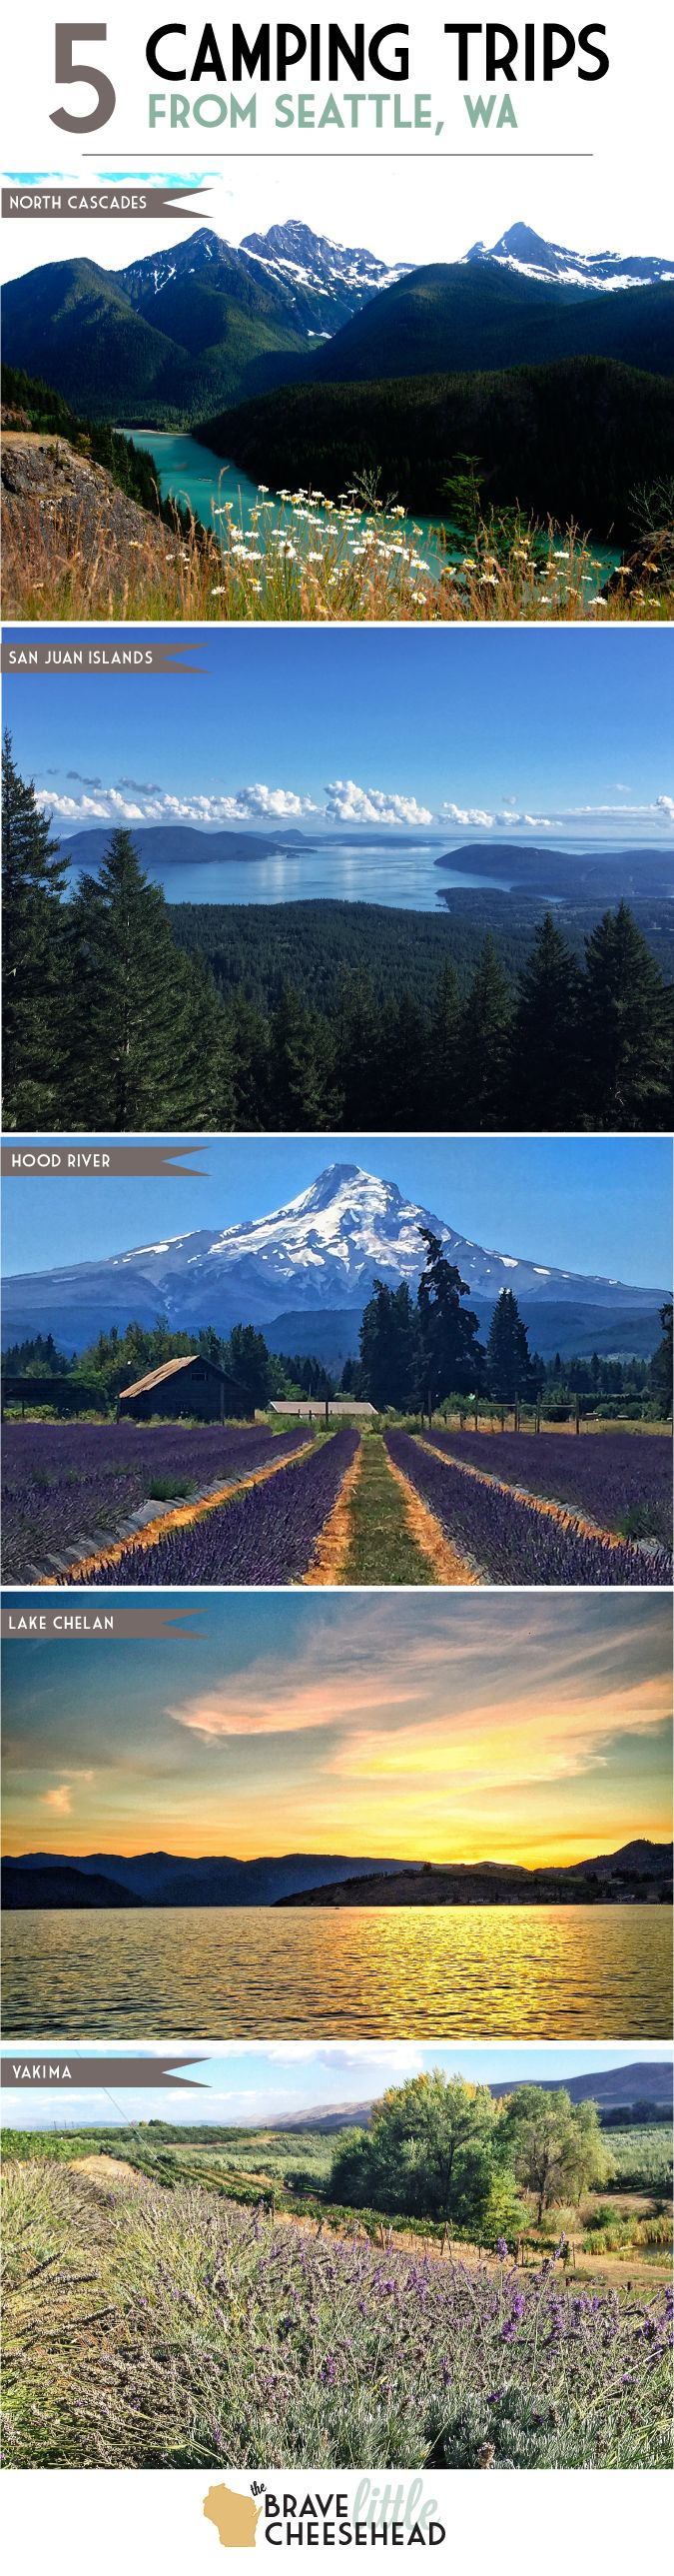 5 Camping Trips from Seattle, Washington | The Brave Little Cheesehead at bravelittlecheesehead.com